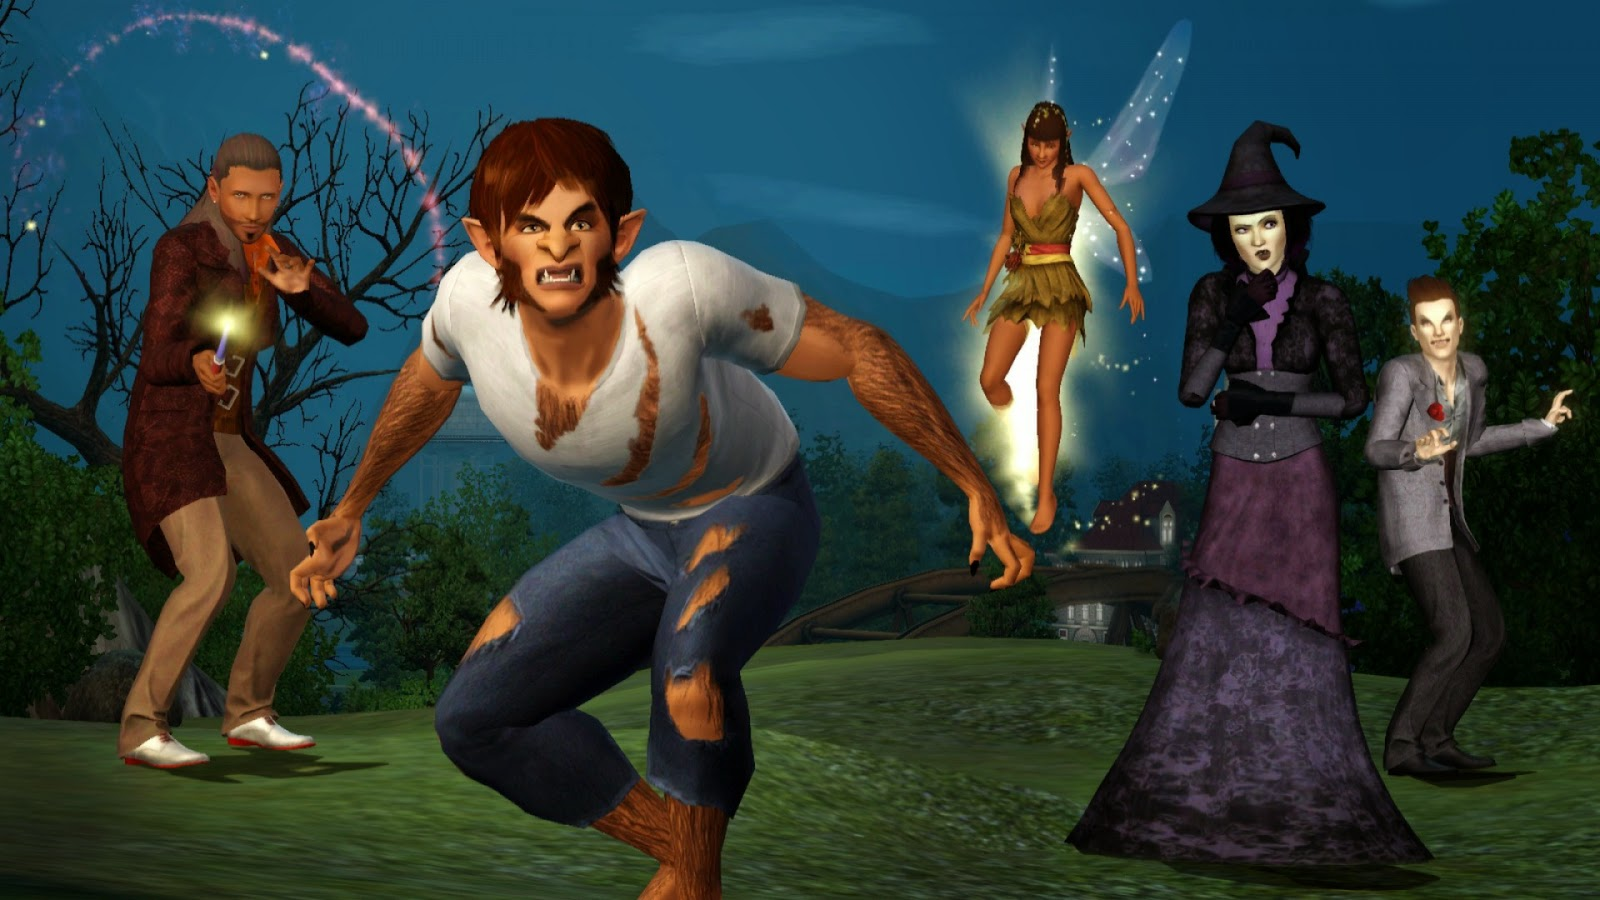 EA Announces The Sims 4 Realm of Magic Game Pack   SimsVIP